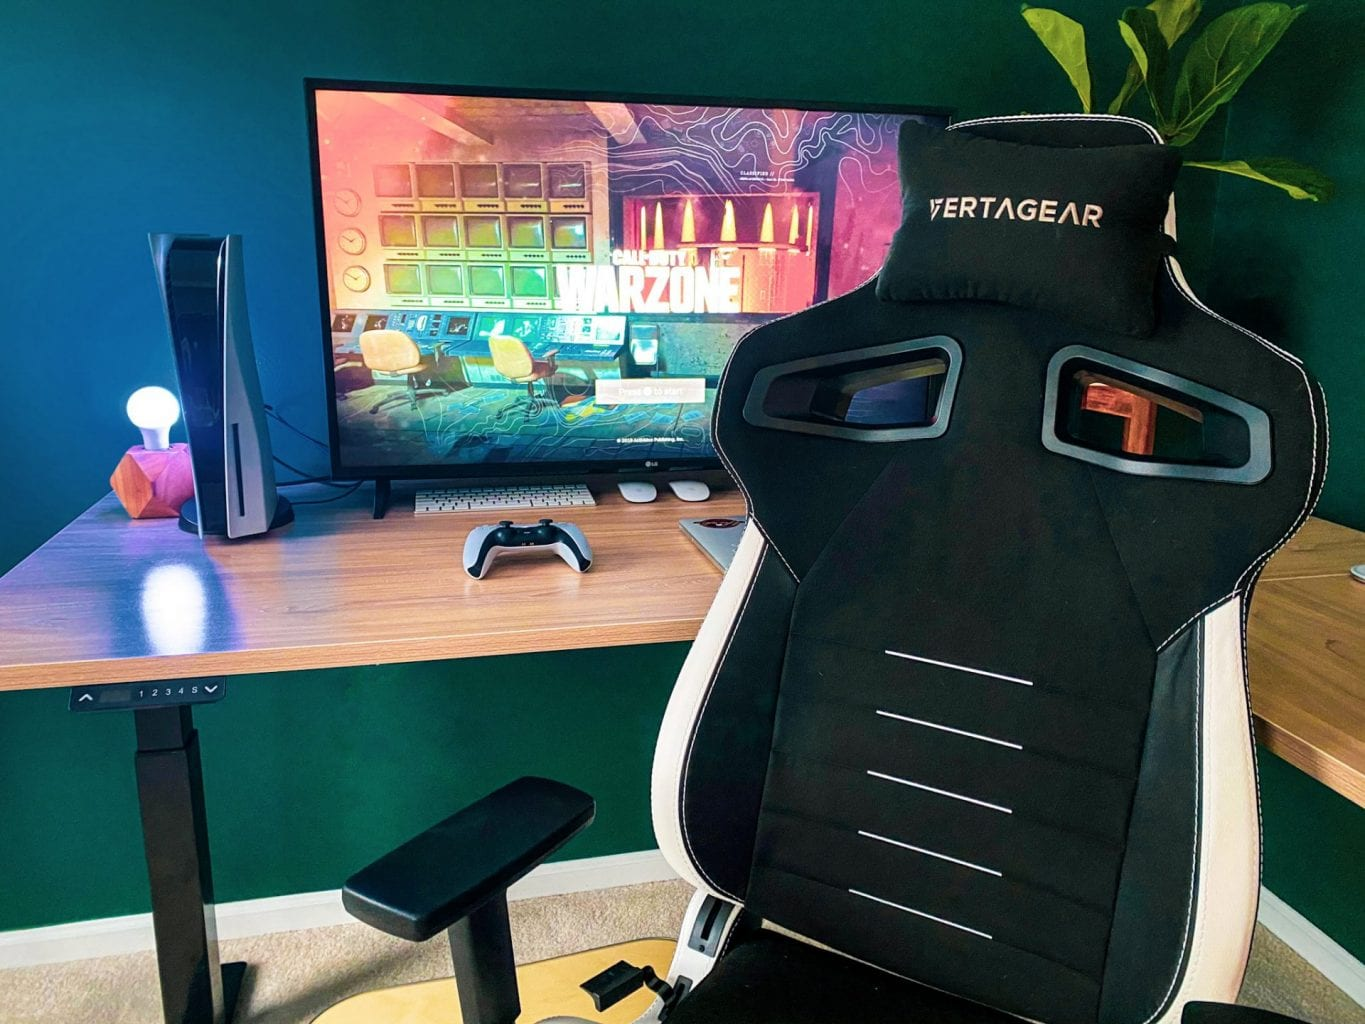 Function meets Luxury in the Vertagear PL4500 Gaming Chair